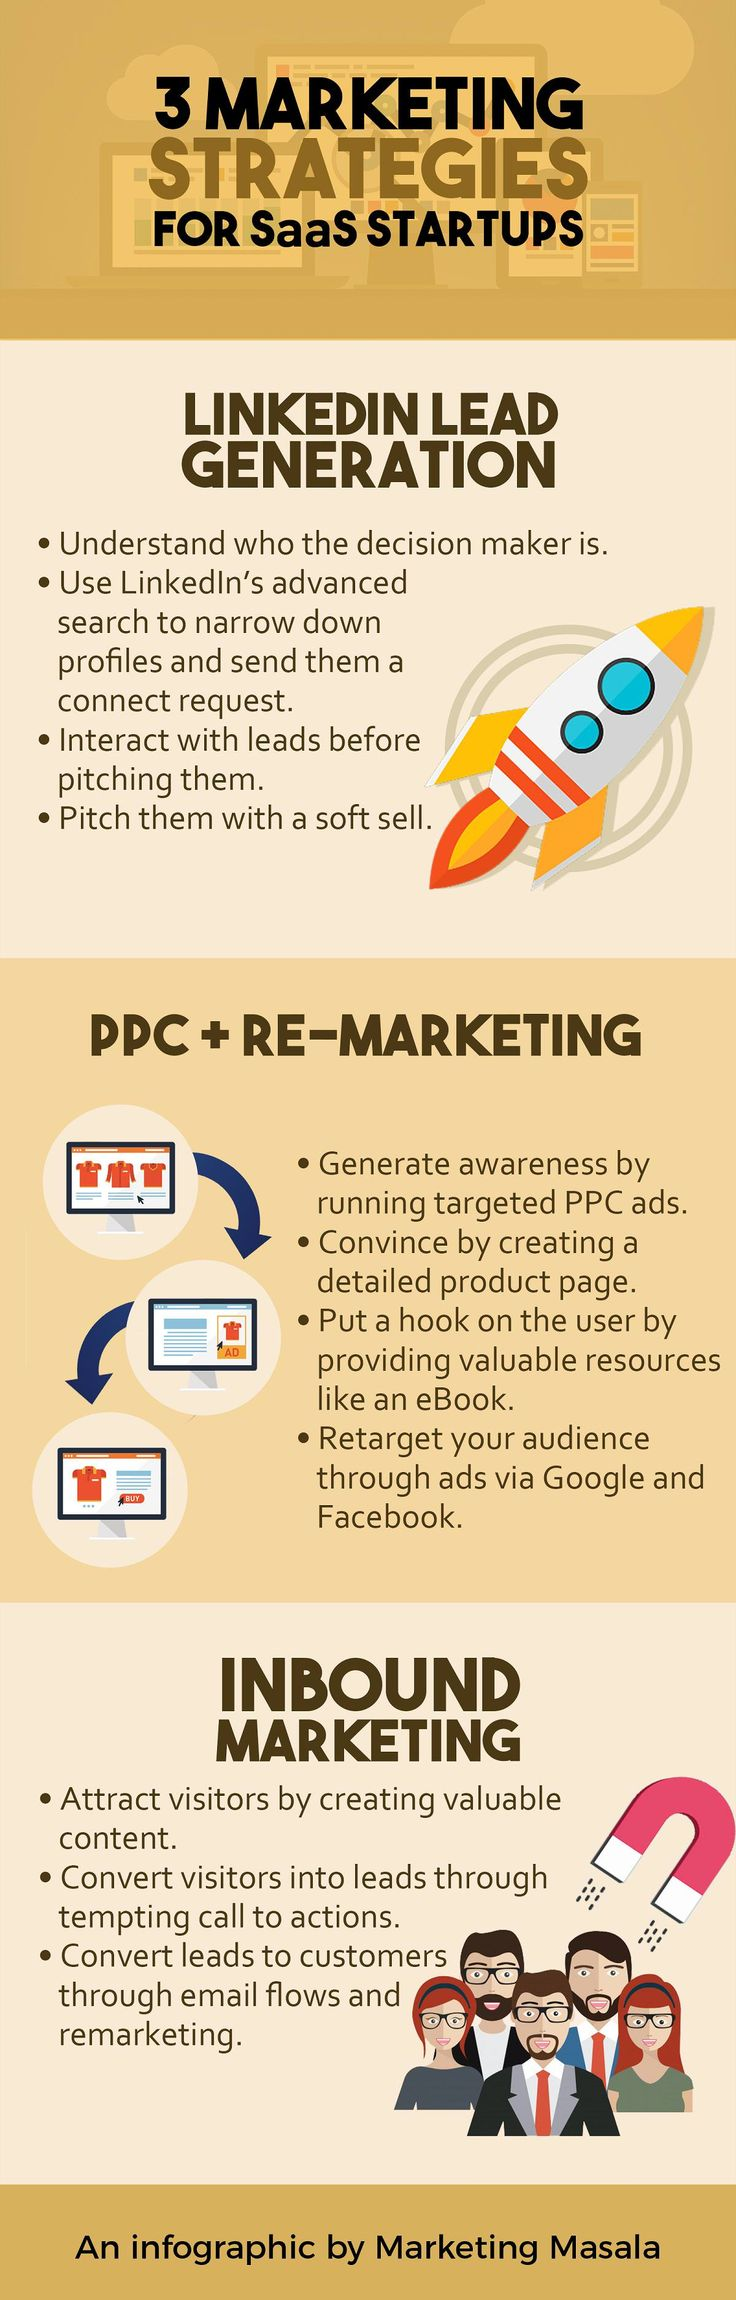 928 best marketing infographics images on pinterest 3 marketing strategies for saas startups infographic fandeluxe Choice Image